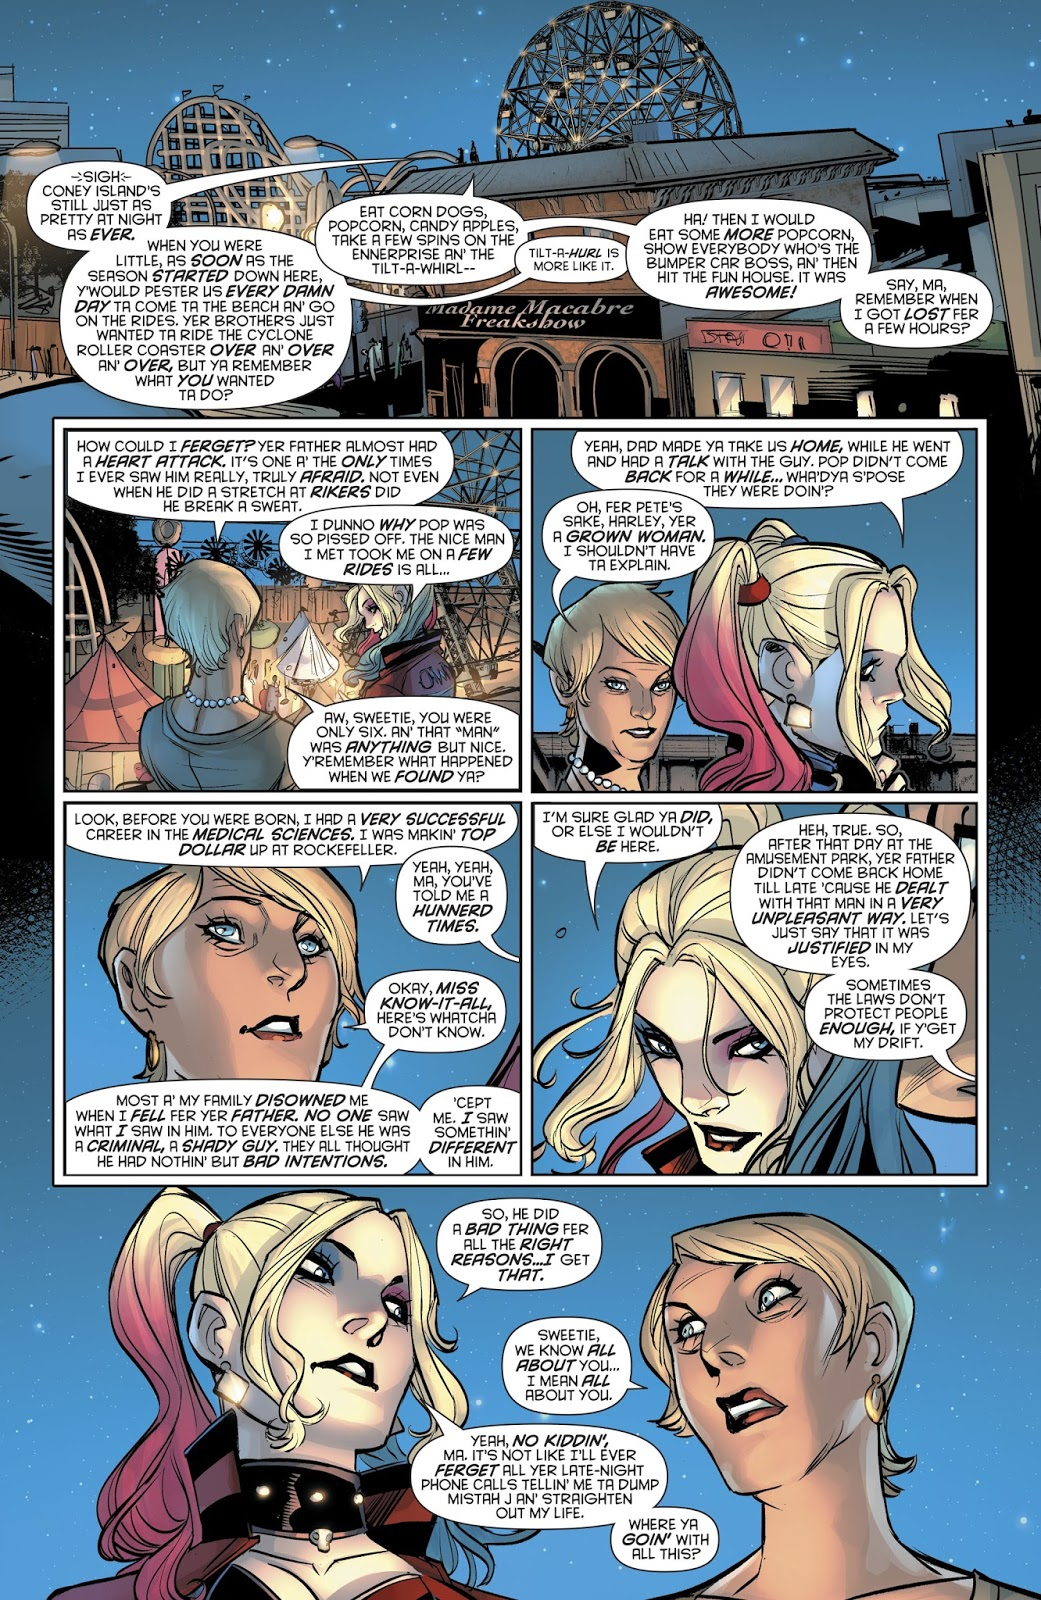 Relationship Advice From Harley Quinn's Mother 1